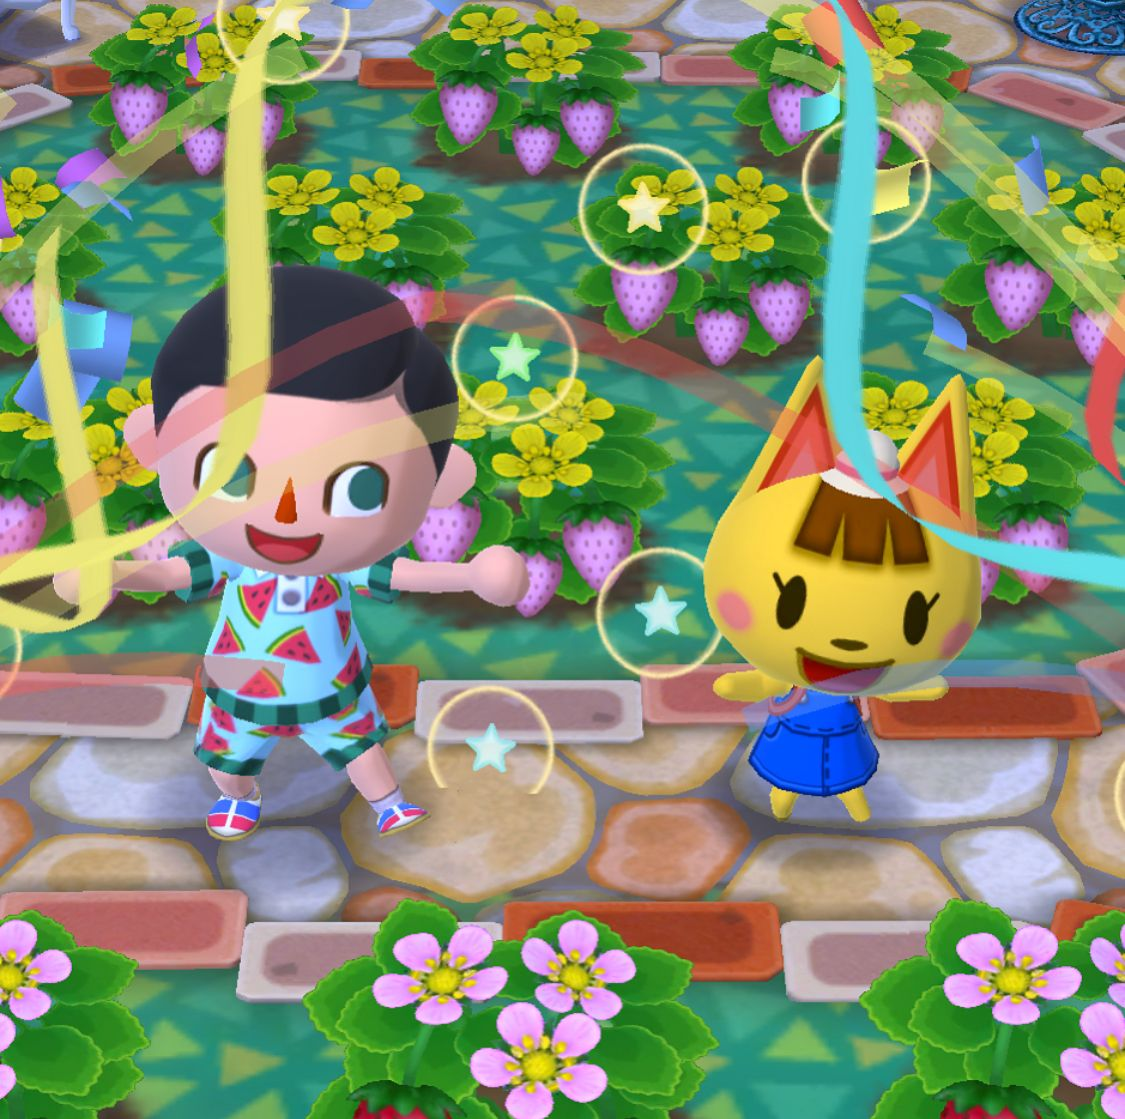 Reminder Animalcrossing Pocketcamp S Fruit Party With Katie